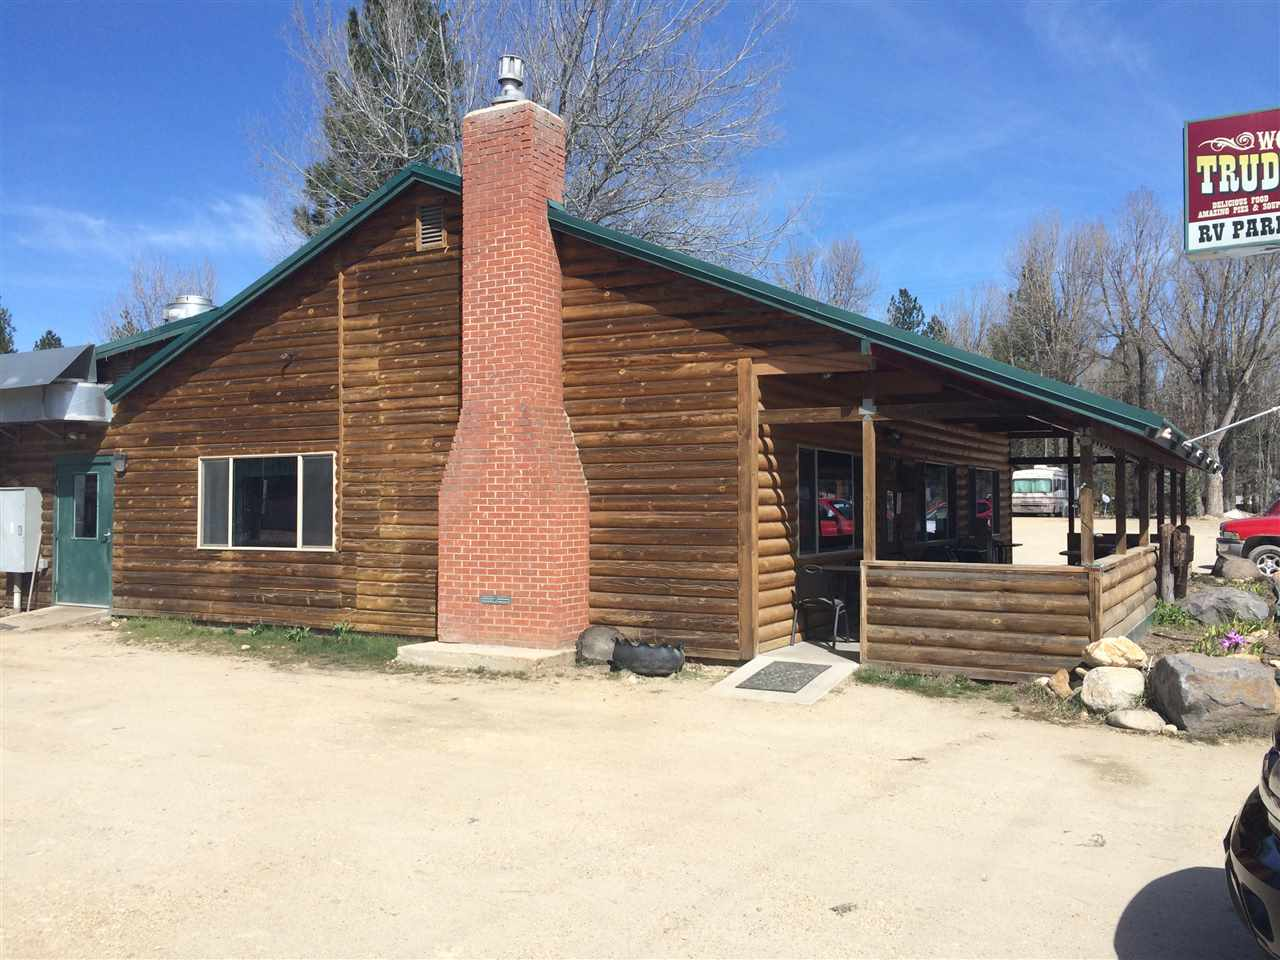 Business Opportunity for Sale at 3876 & 3878 Highway 21 3876 & 3878 Highway 21 Idaho City, Idaho 83631